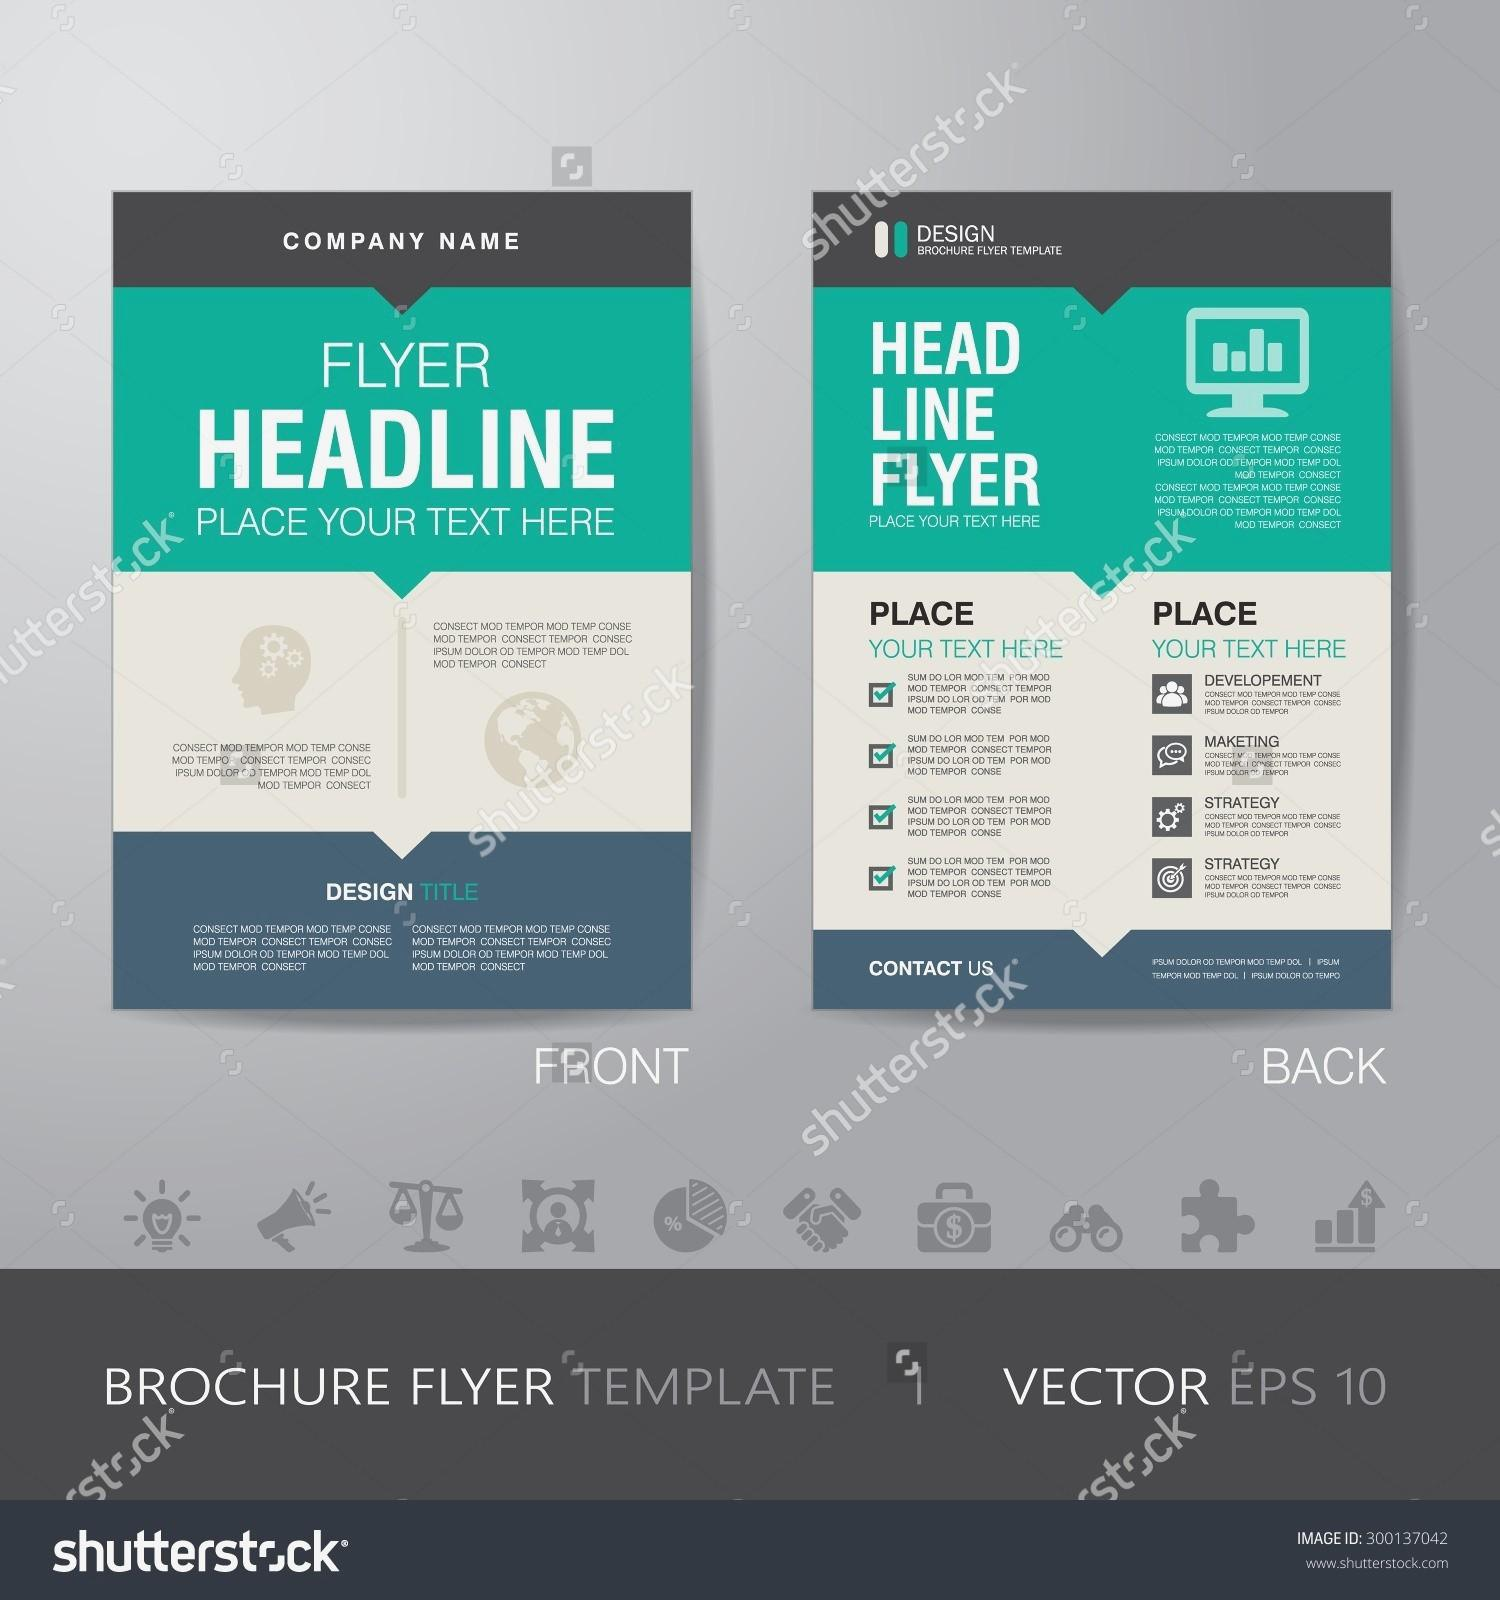 Free Online Flyer Templates For Word